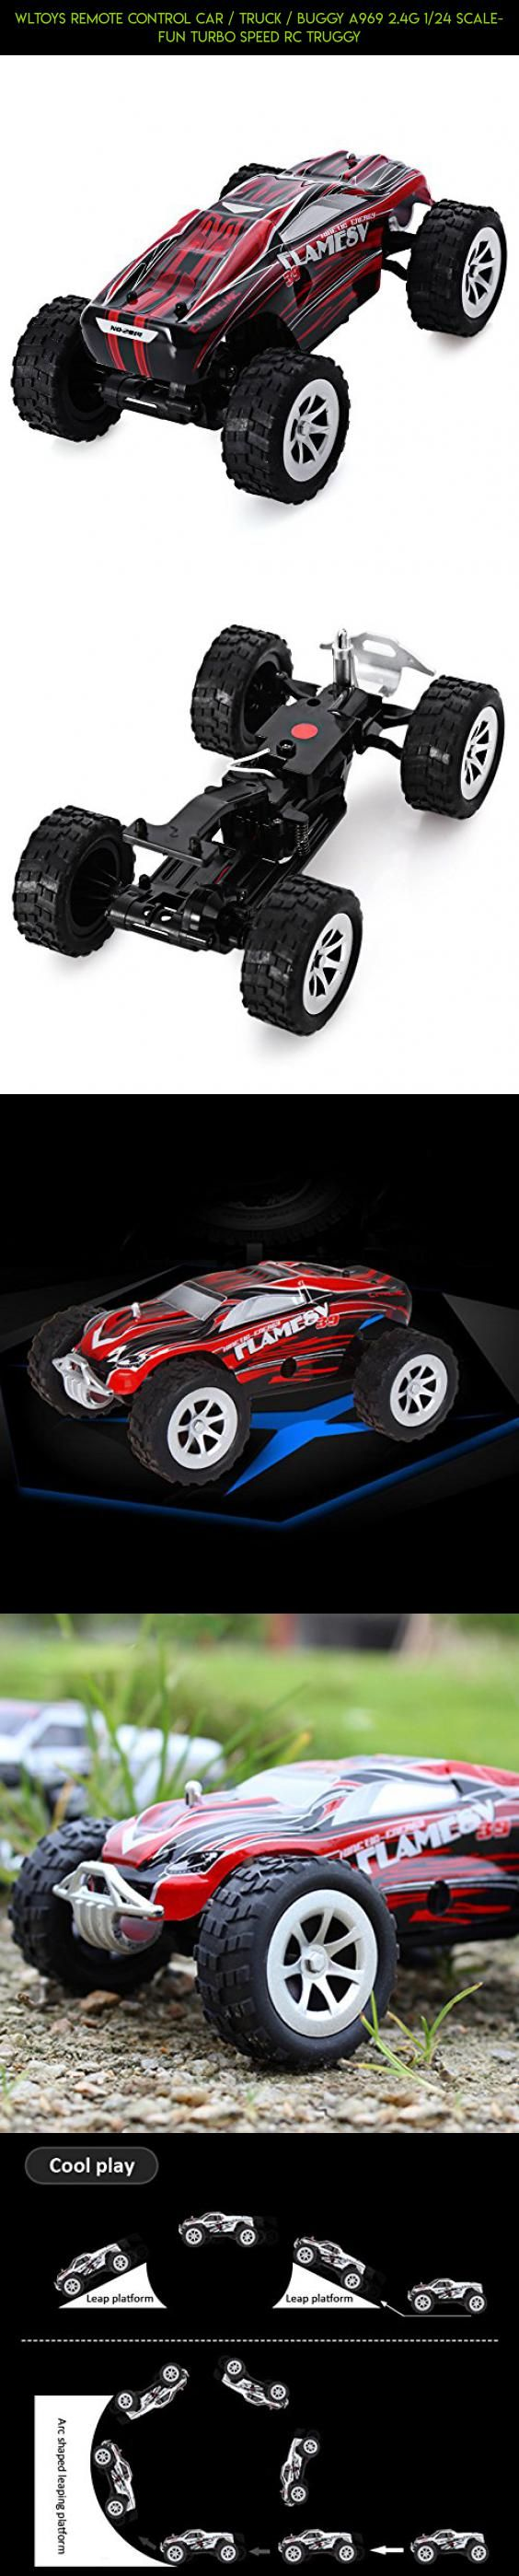 WLtoys Remote Control Car / Truck / Buggy A969 2.4G 1/24 Scale- Fun Turbo Speed Rc Truggy #fpv #products #kit #plans #tech #technology #parts #a999 #gadgets #drone #racing #wltoys #camera #shopping